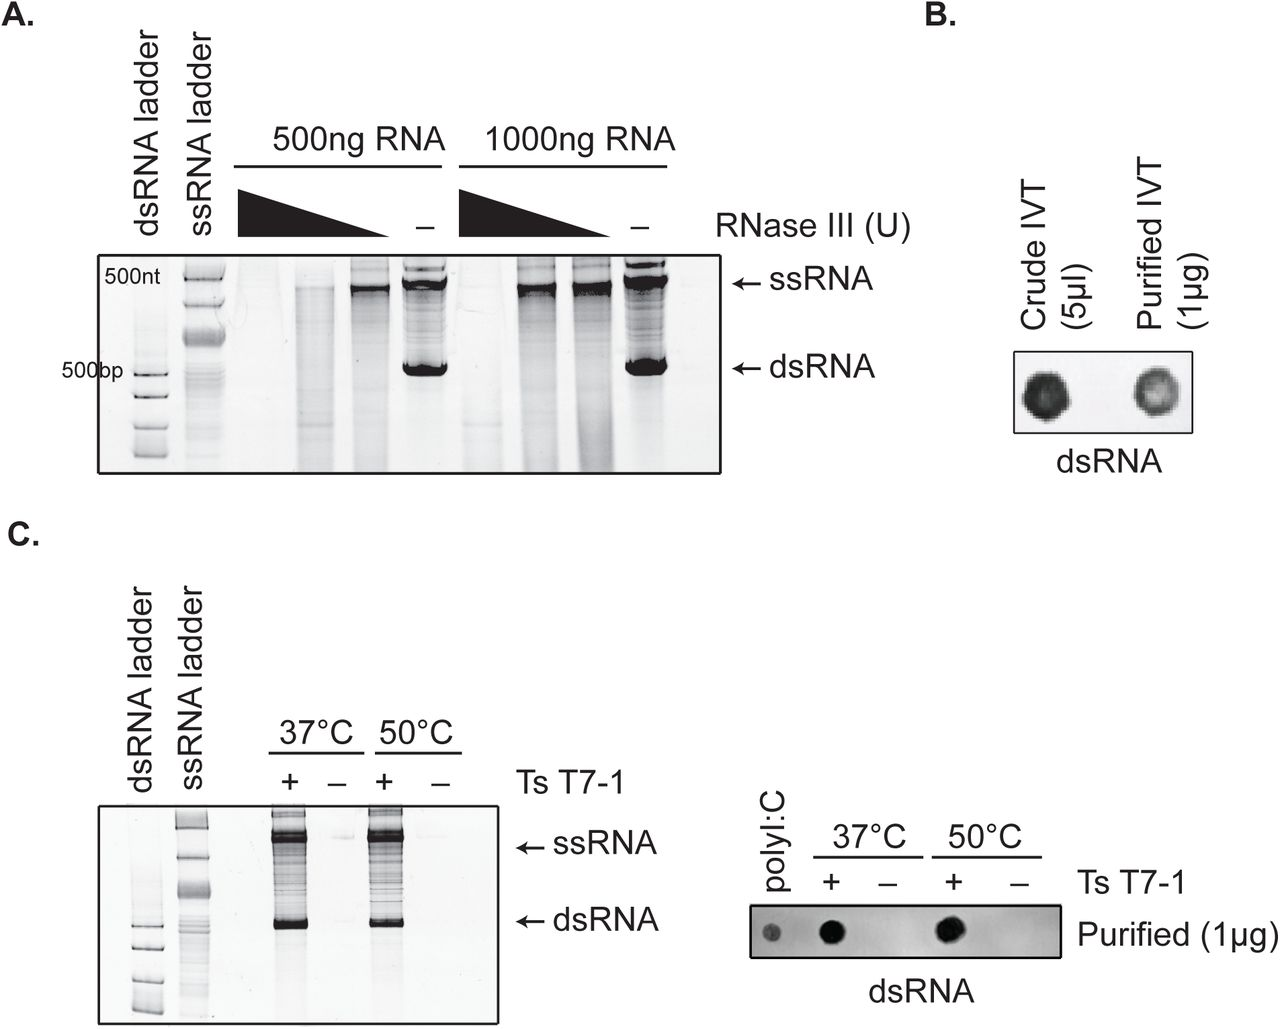 High-temperature in vitro transcription does not affect antisense dsRNA by-product formation. A) Native gel electrophoresis analyses of IVT reactions on 512B DNA template using wild-type T7 (37°C) with/without RNase III treatment. B) dsRNA immunoblot with J2 antibody on IVT reactions (crude and purified) with 512B template. C) Native gel electrophoresis analyses and dsRNA immunoblot analysis of 512B IVT reactions conducted with TsT7-1 at 37°C vs . 50°C.